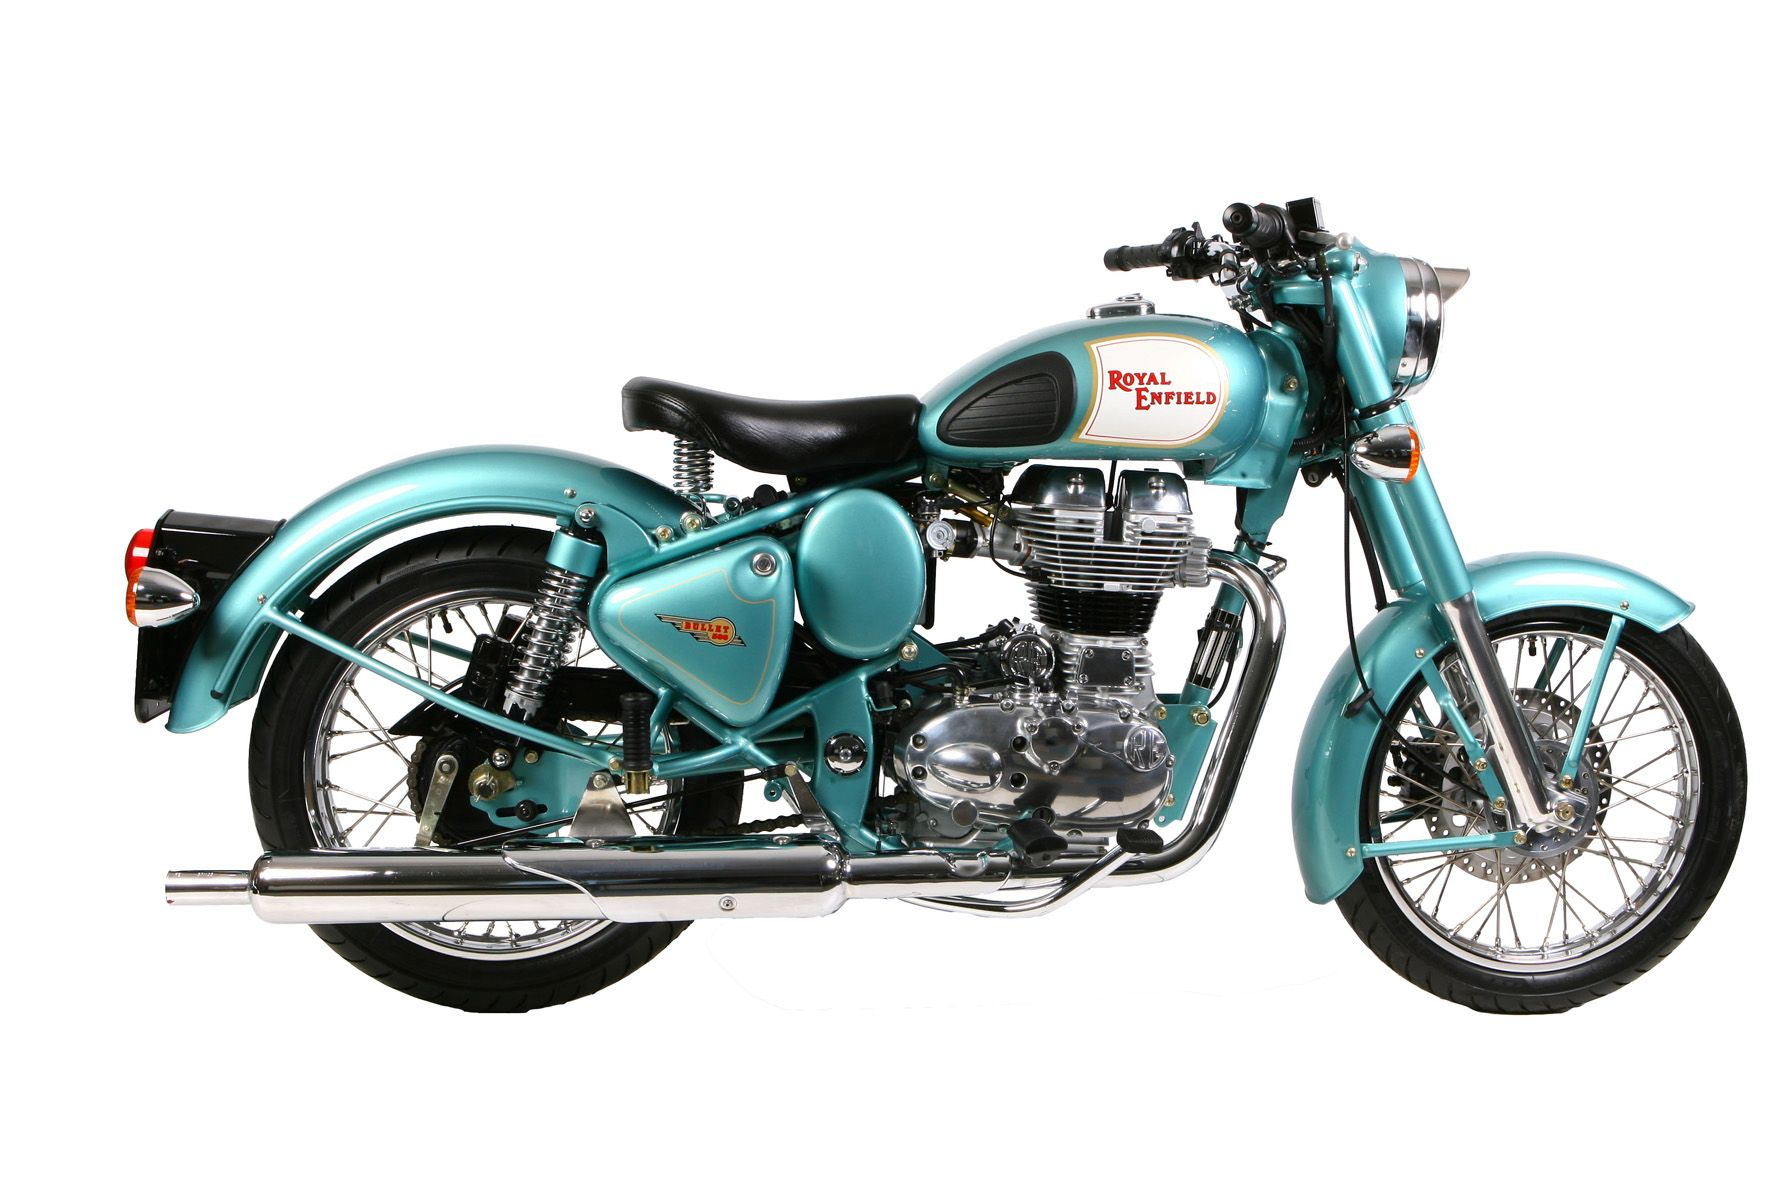 Royal enfield bullet pictures - Motos Royal Enfield Make Like A Gun